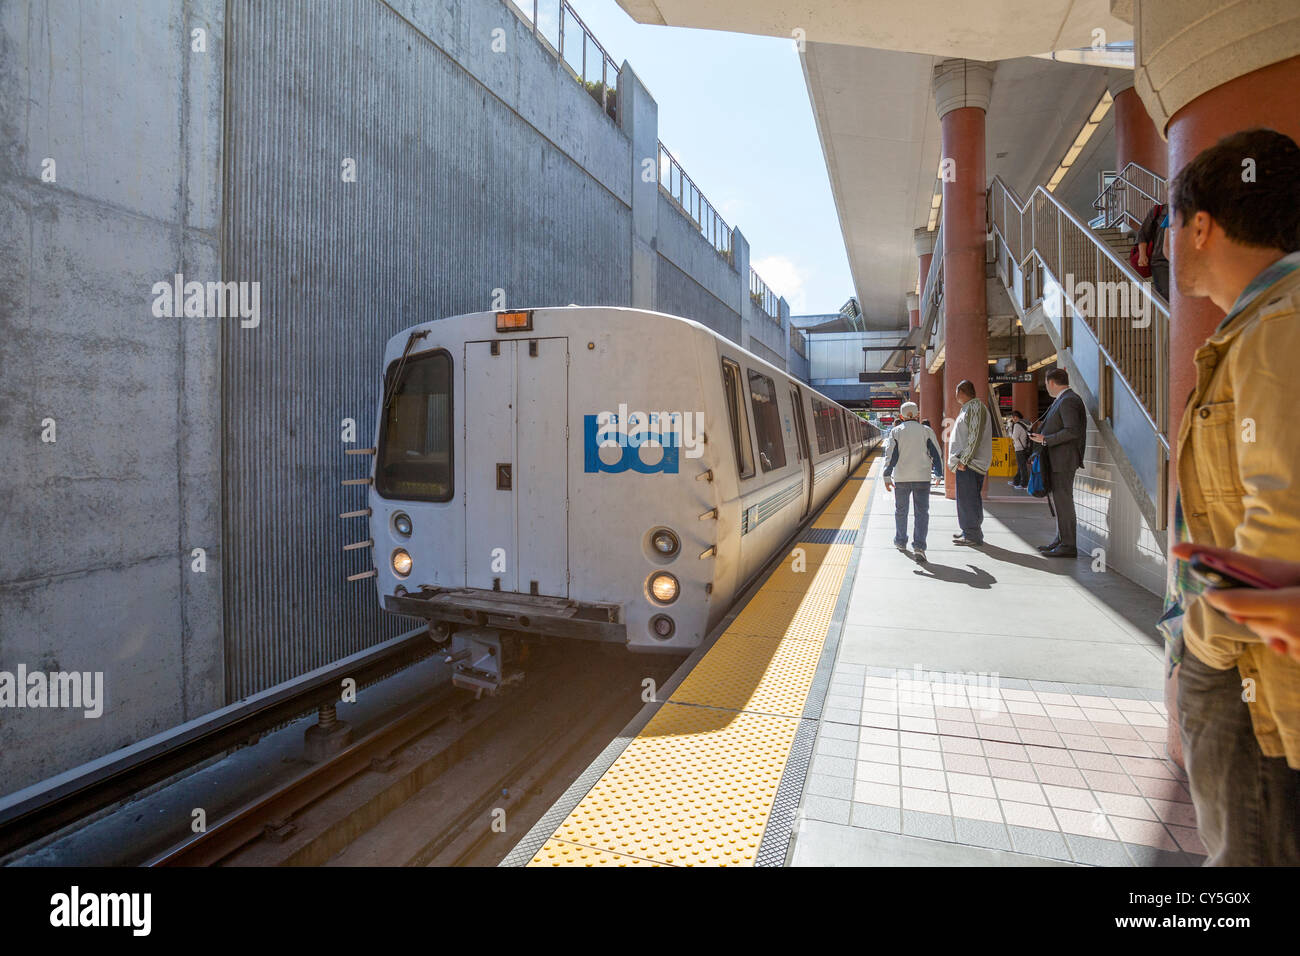 The BART system train in San Francisco, California. - Stock Image